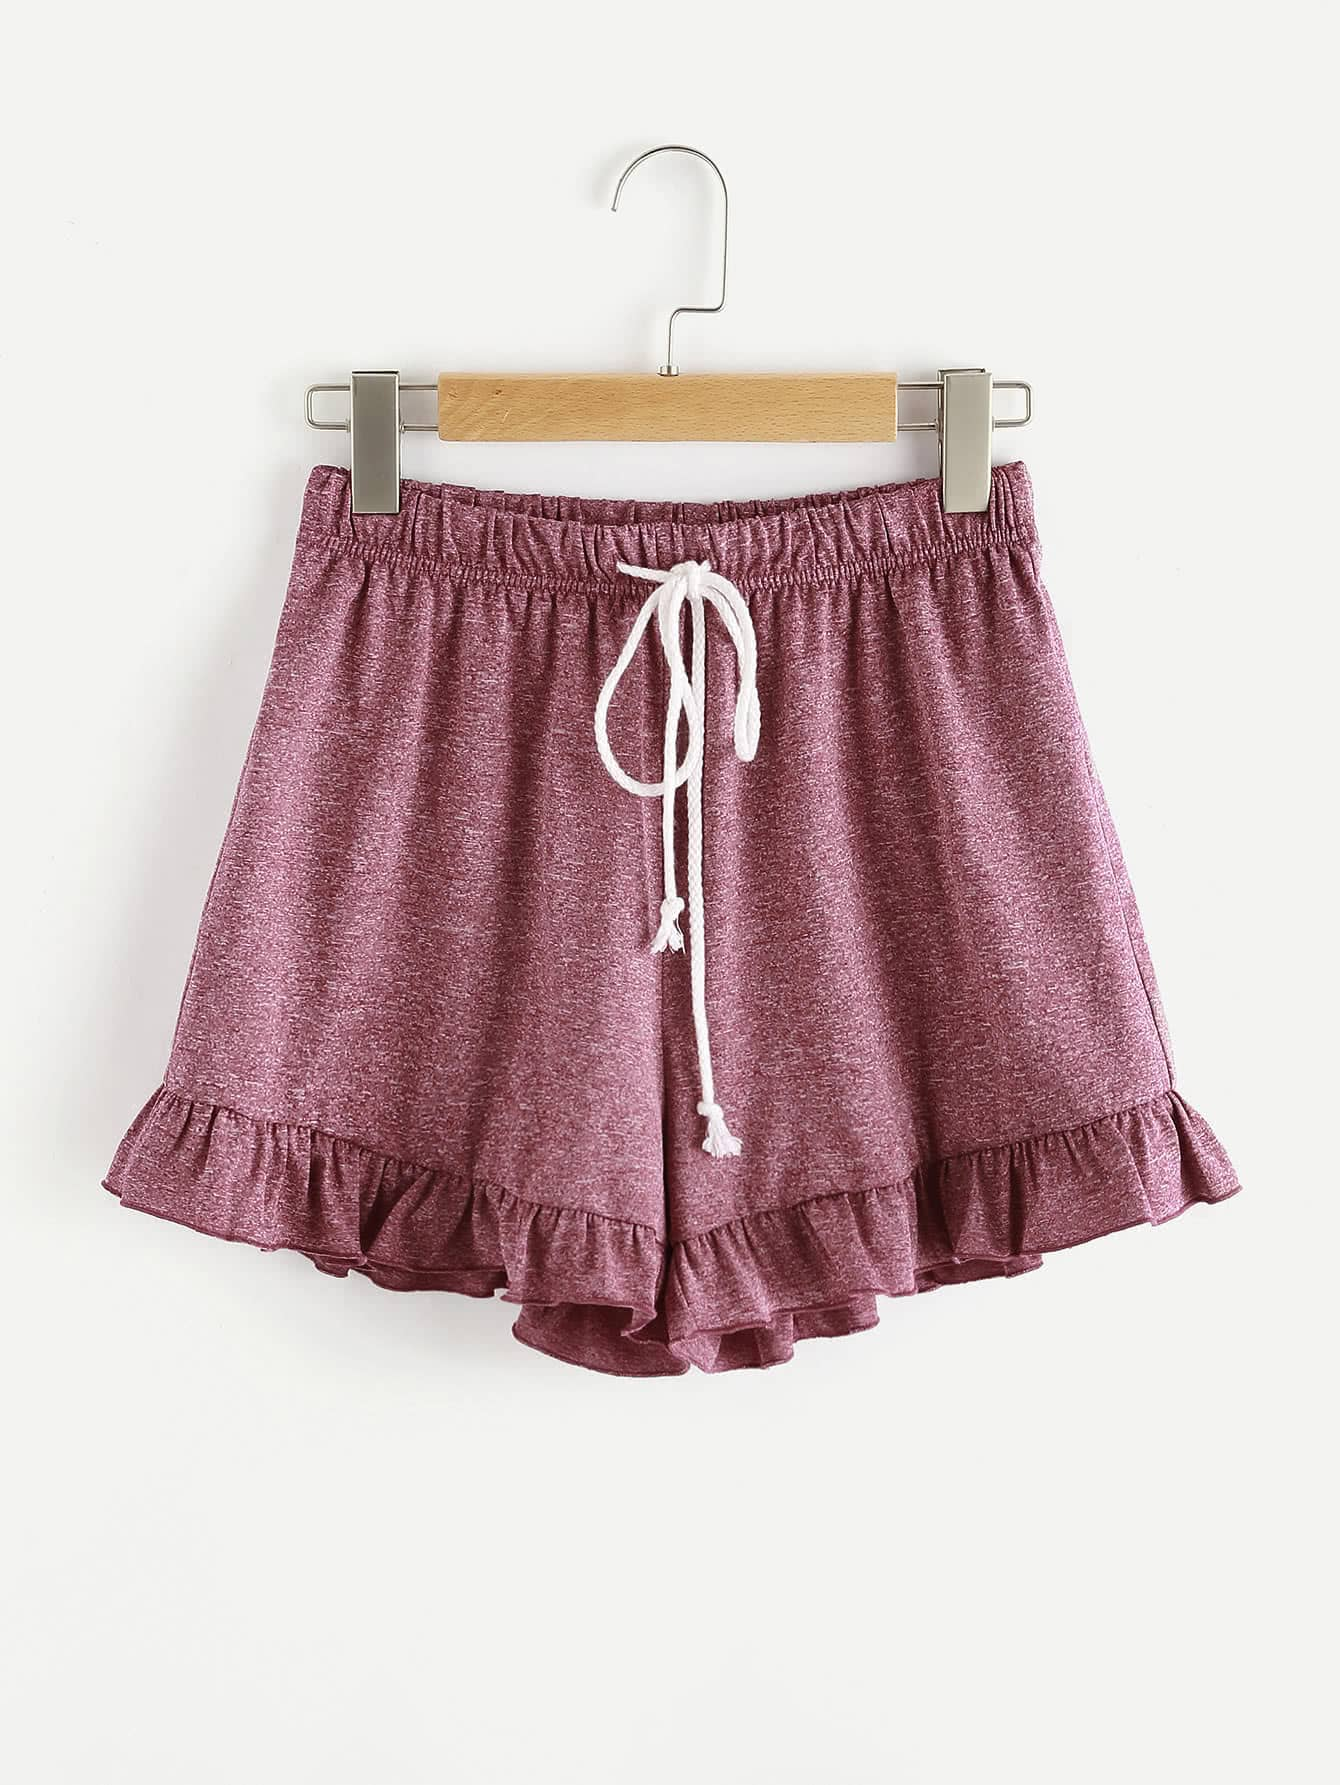 Marled Knit Drawstring Waist Frilled Sweat Shorts